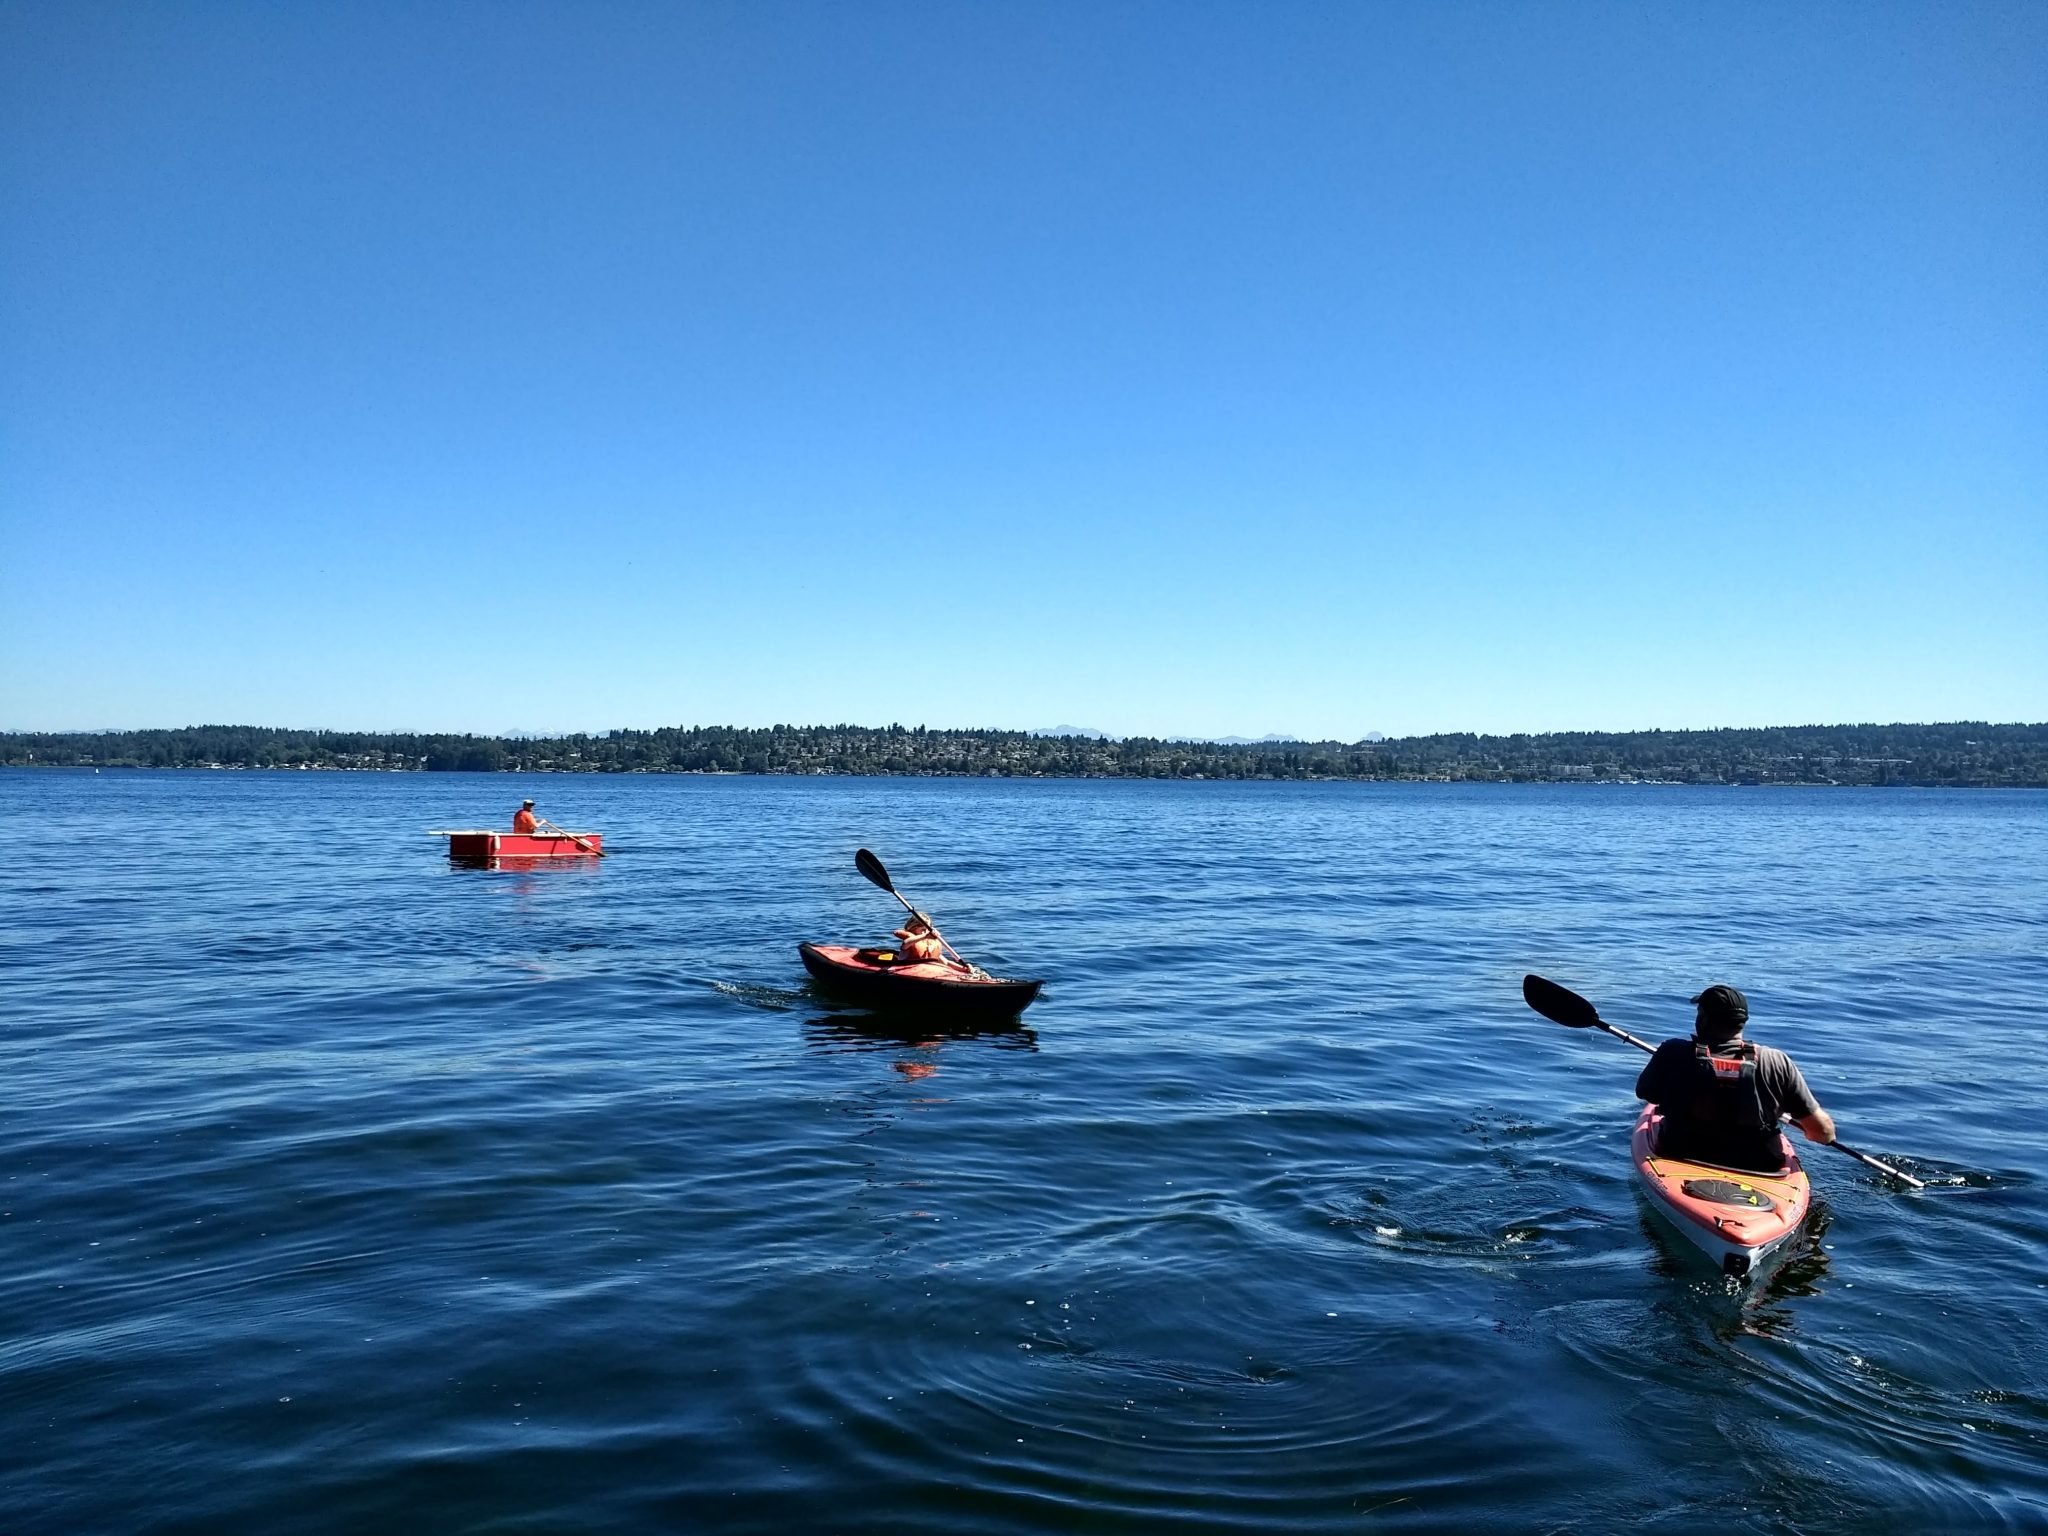 Two kayakers and a rowboater are in on a lake on a sunny day. The boats are facing in different directions. There is a forested hill with houses in the background